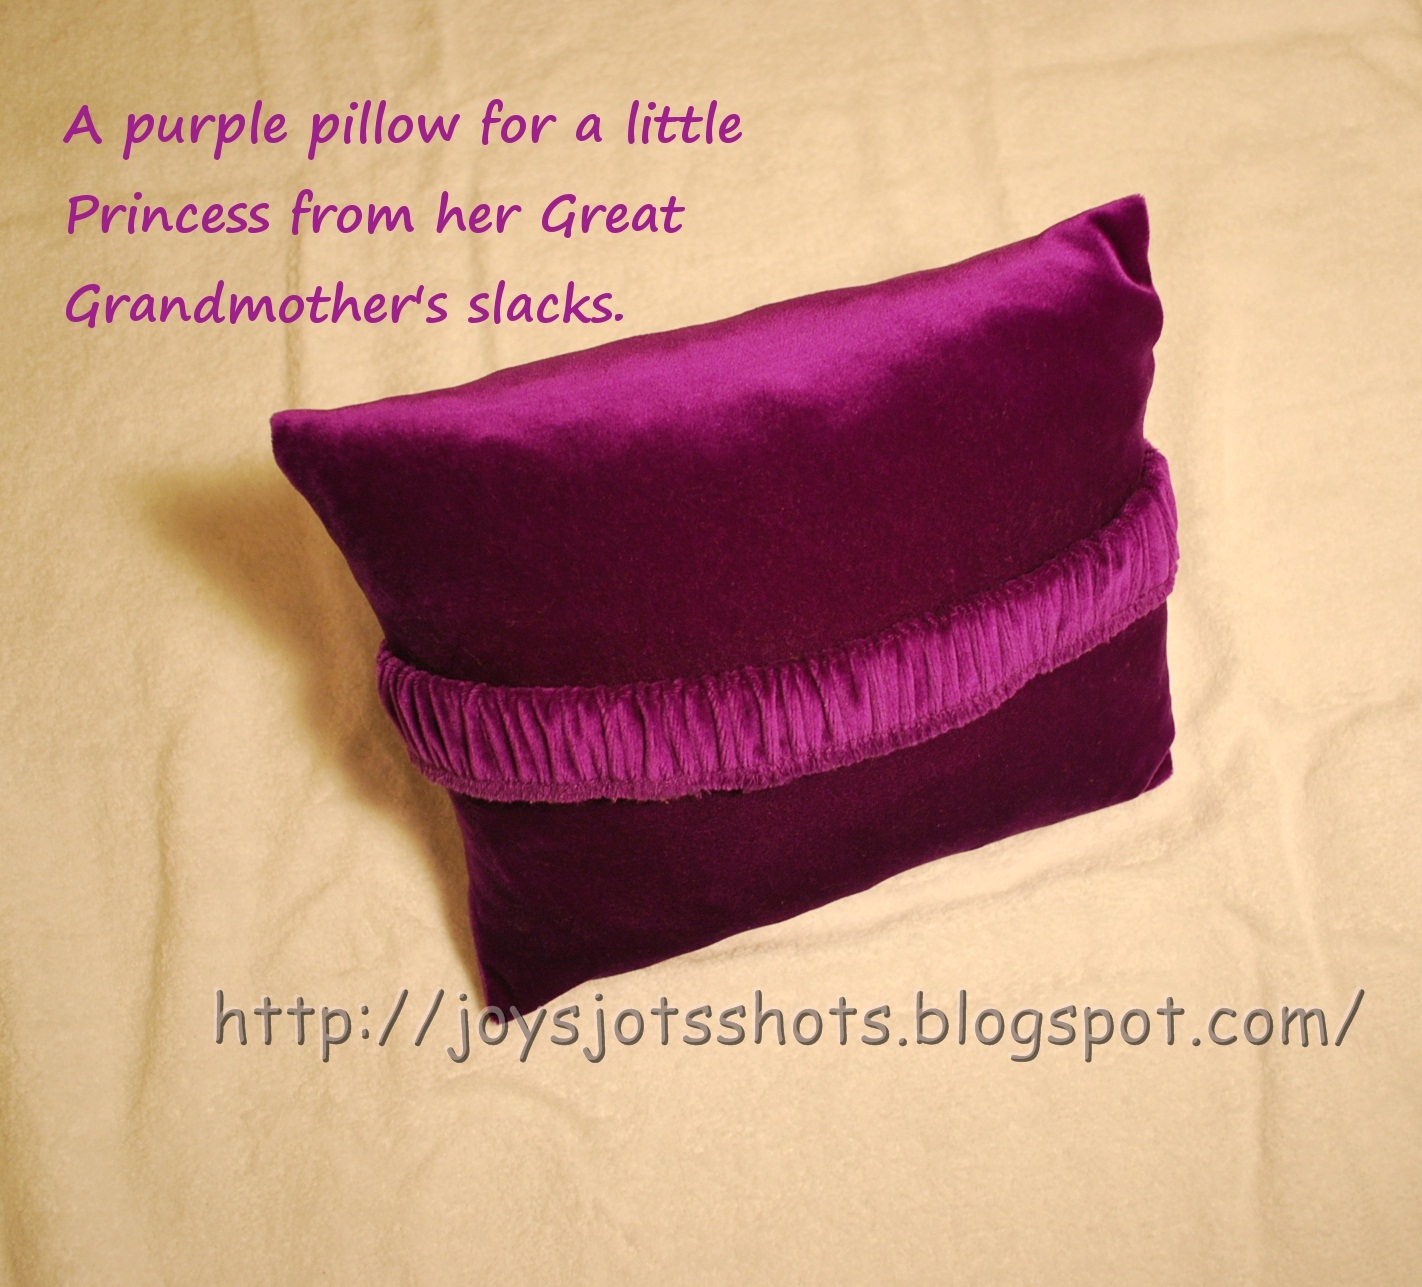 http://joysjotsshots.blogspot.com/2012/02/purple-pillow-for-princess.html